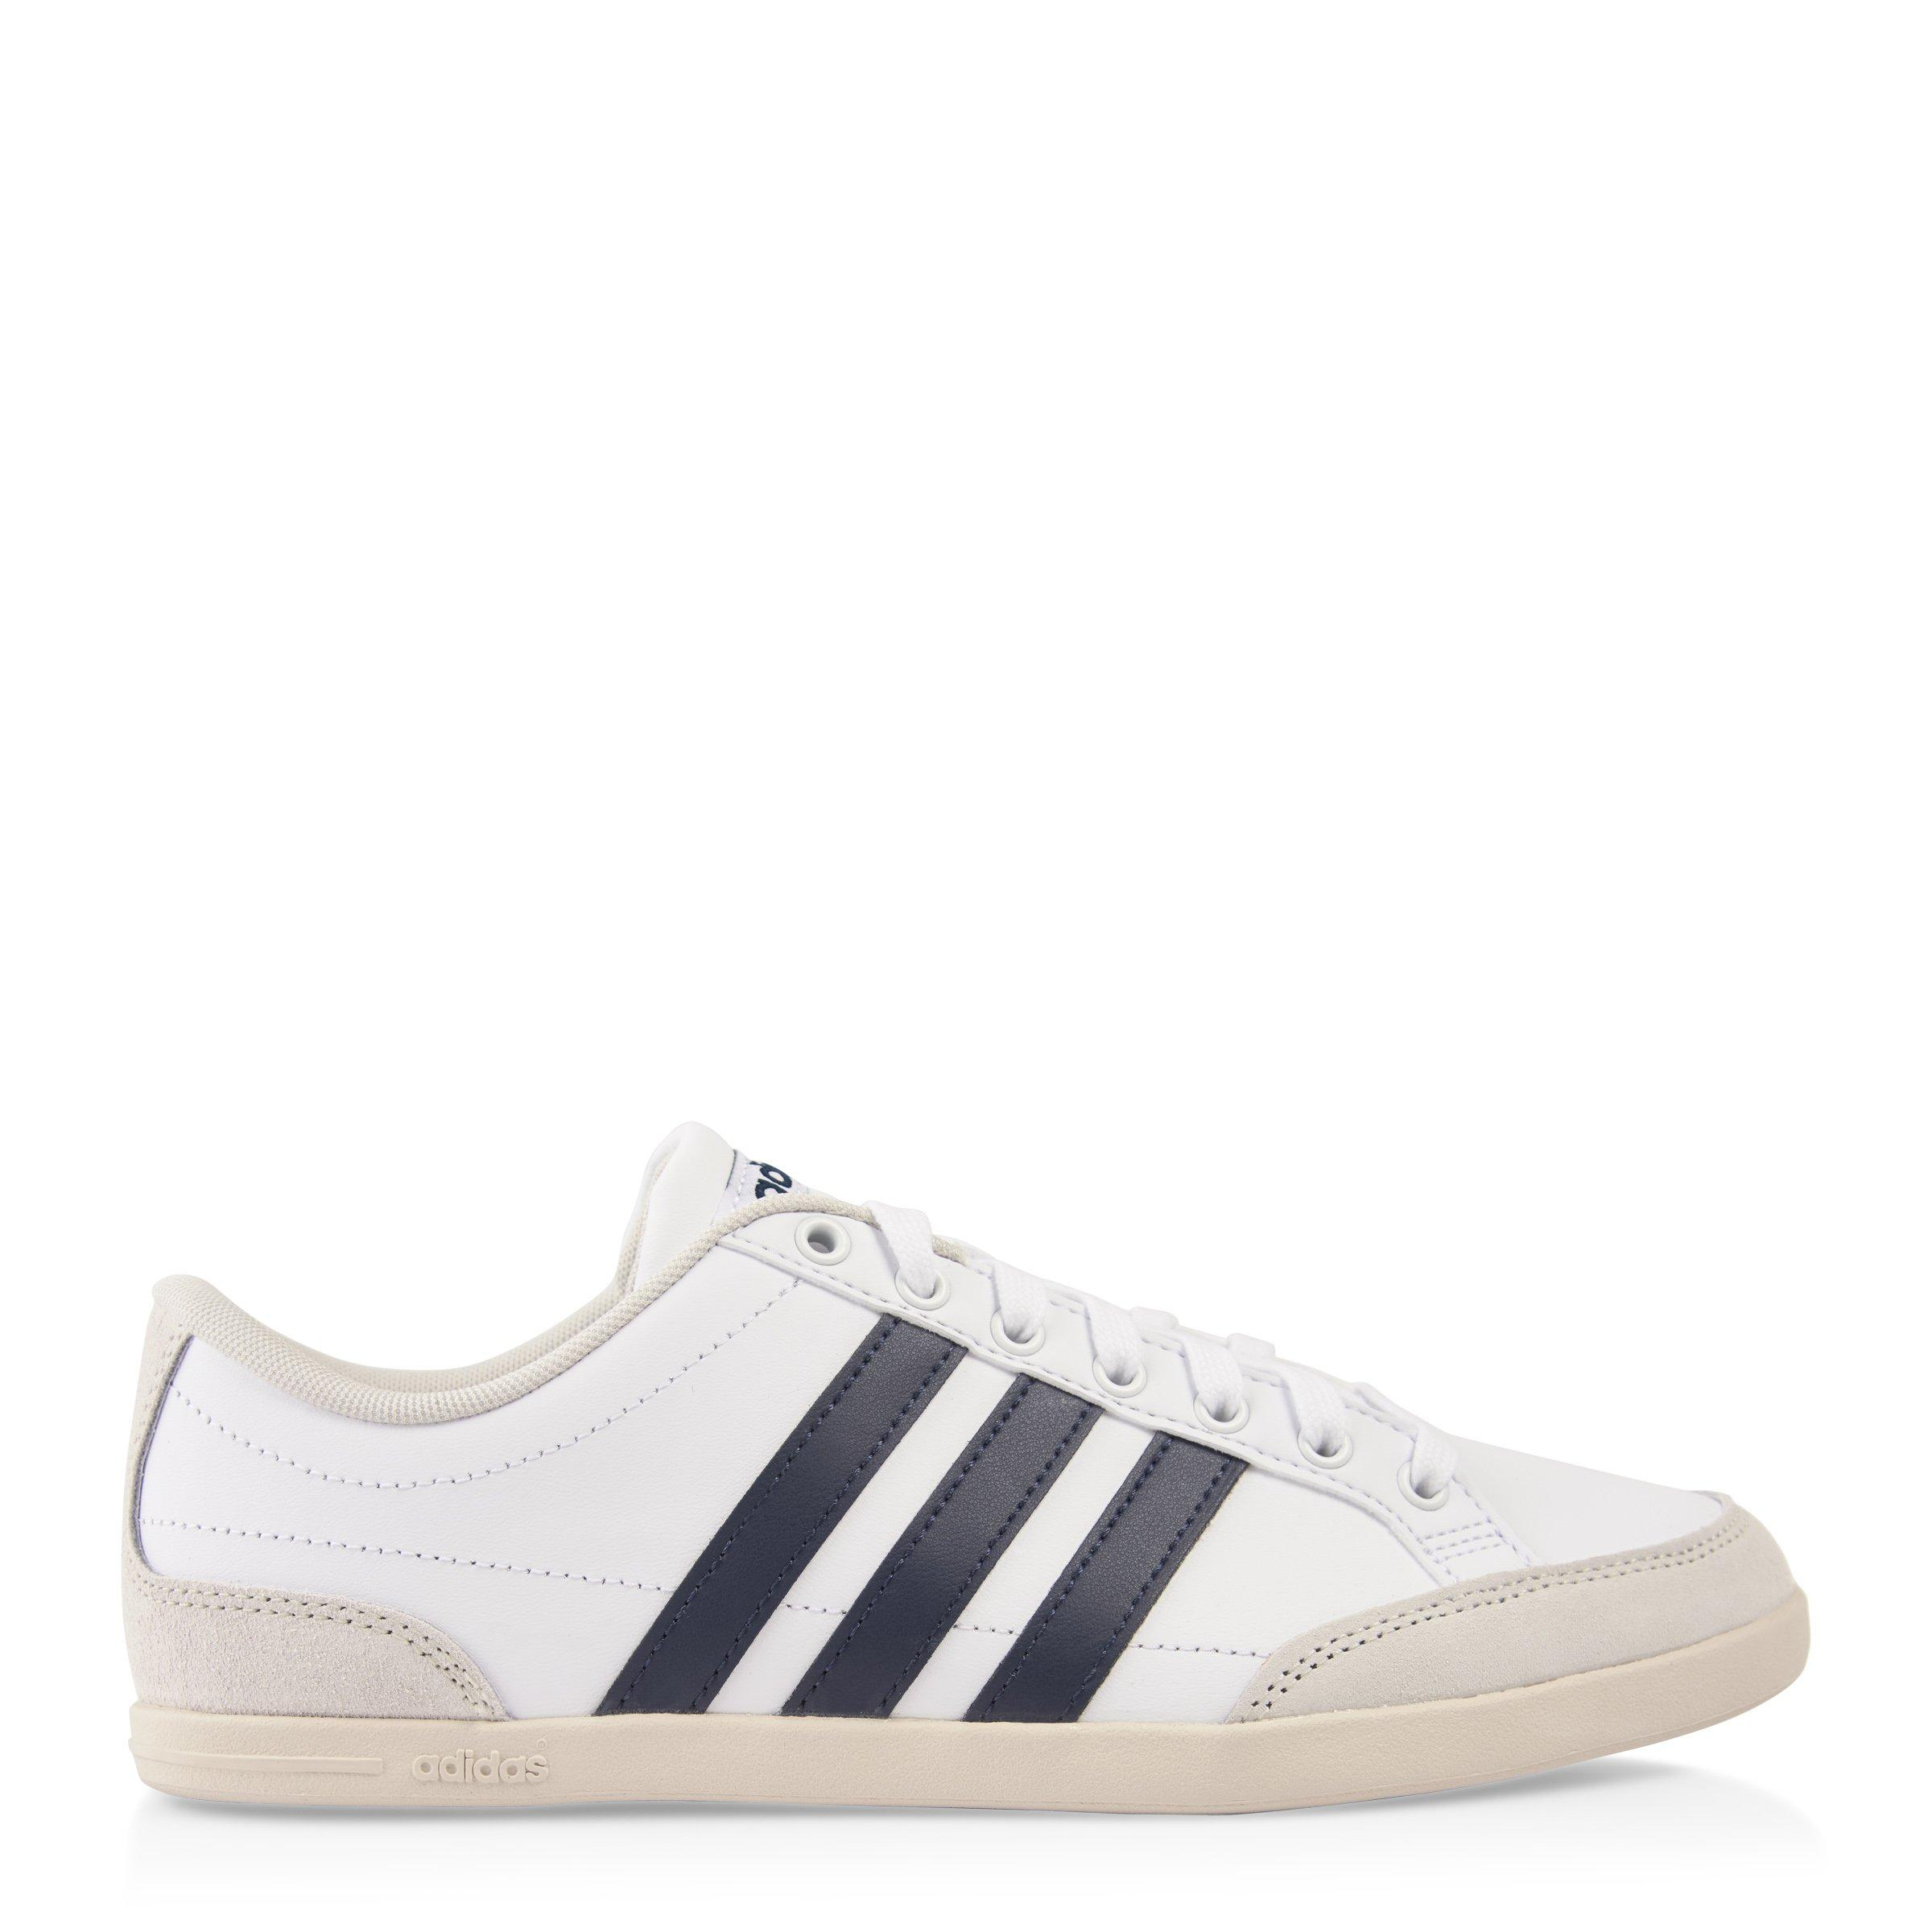 adidas sneakers at truworths